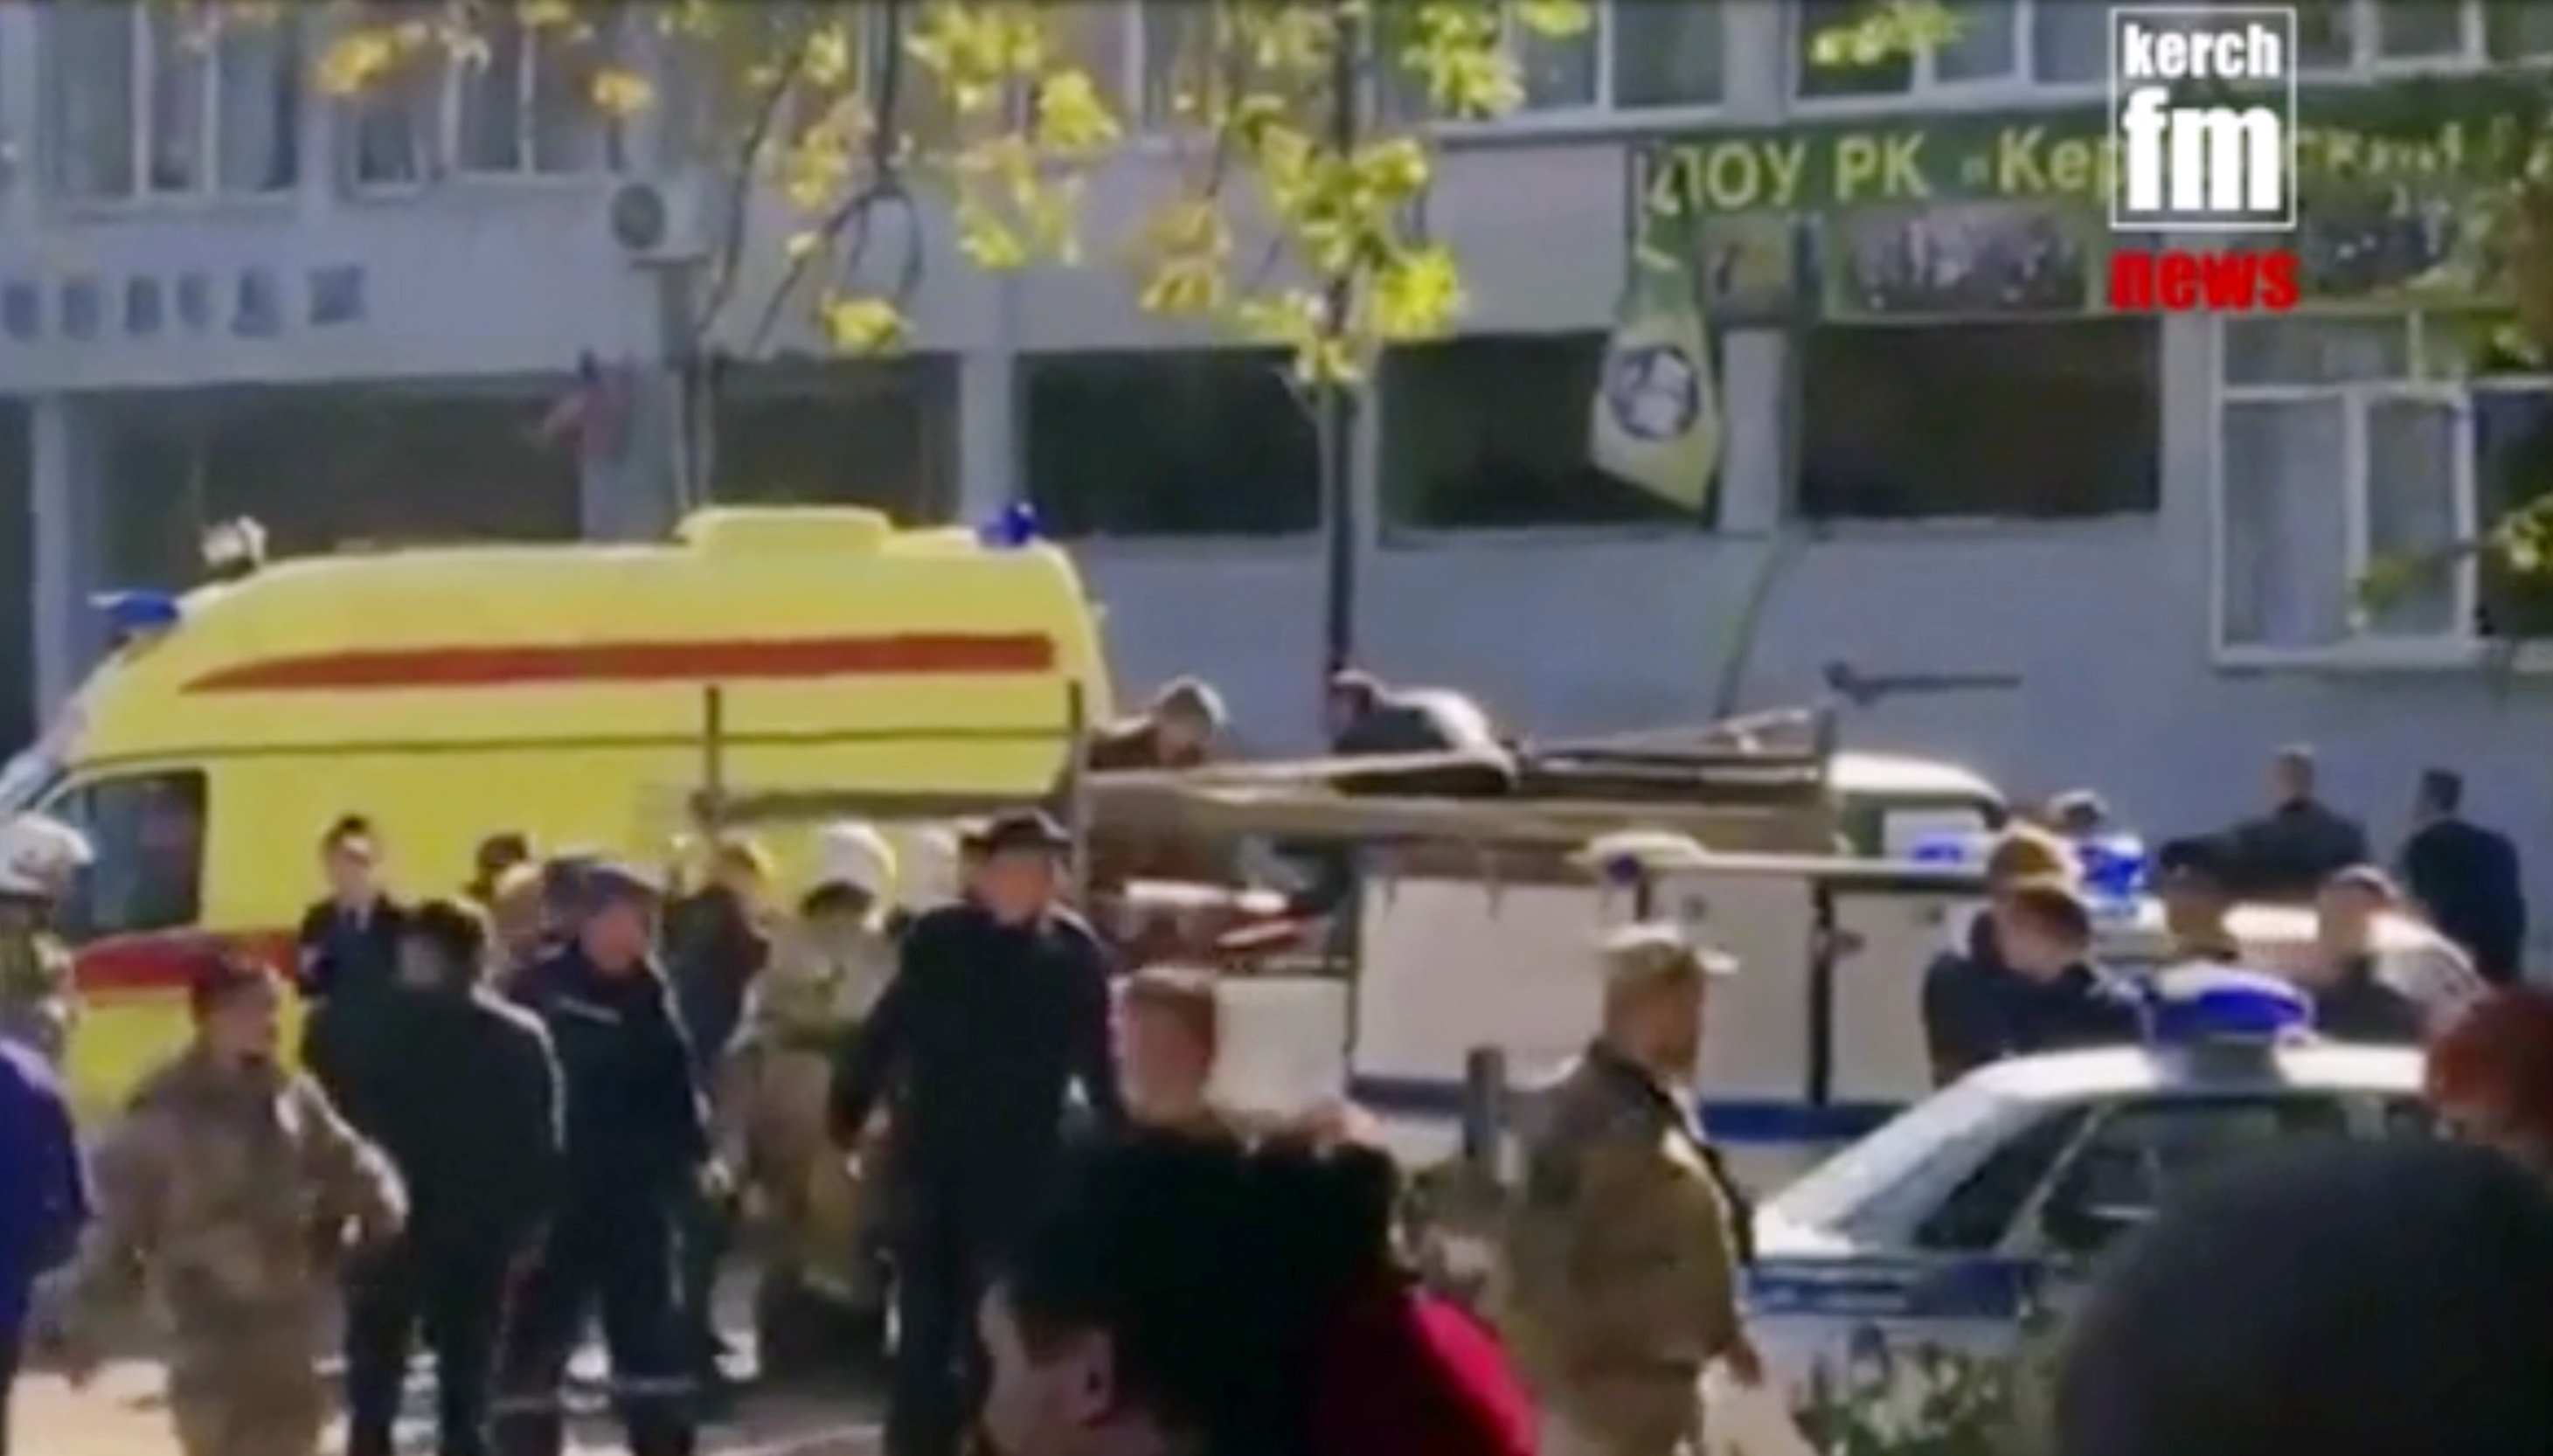 Deathtoll in Kerch college shooting climbs to 20 people - authorities